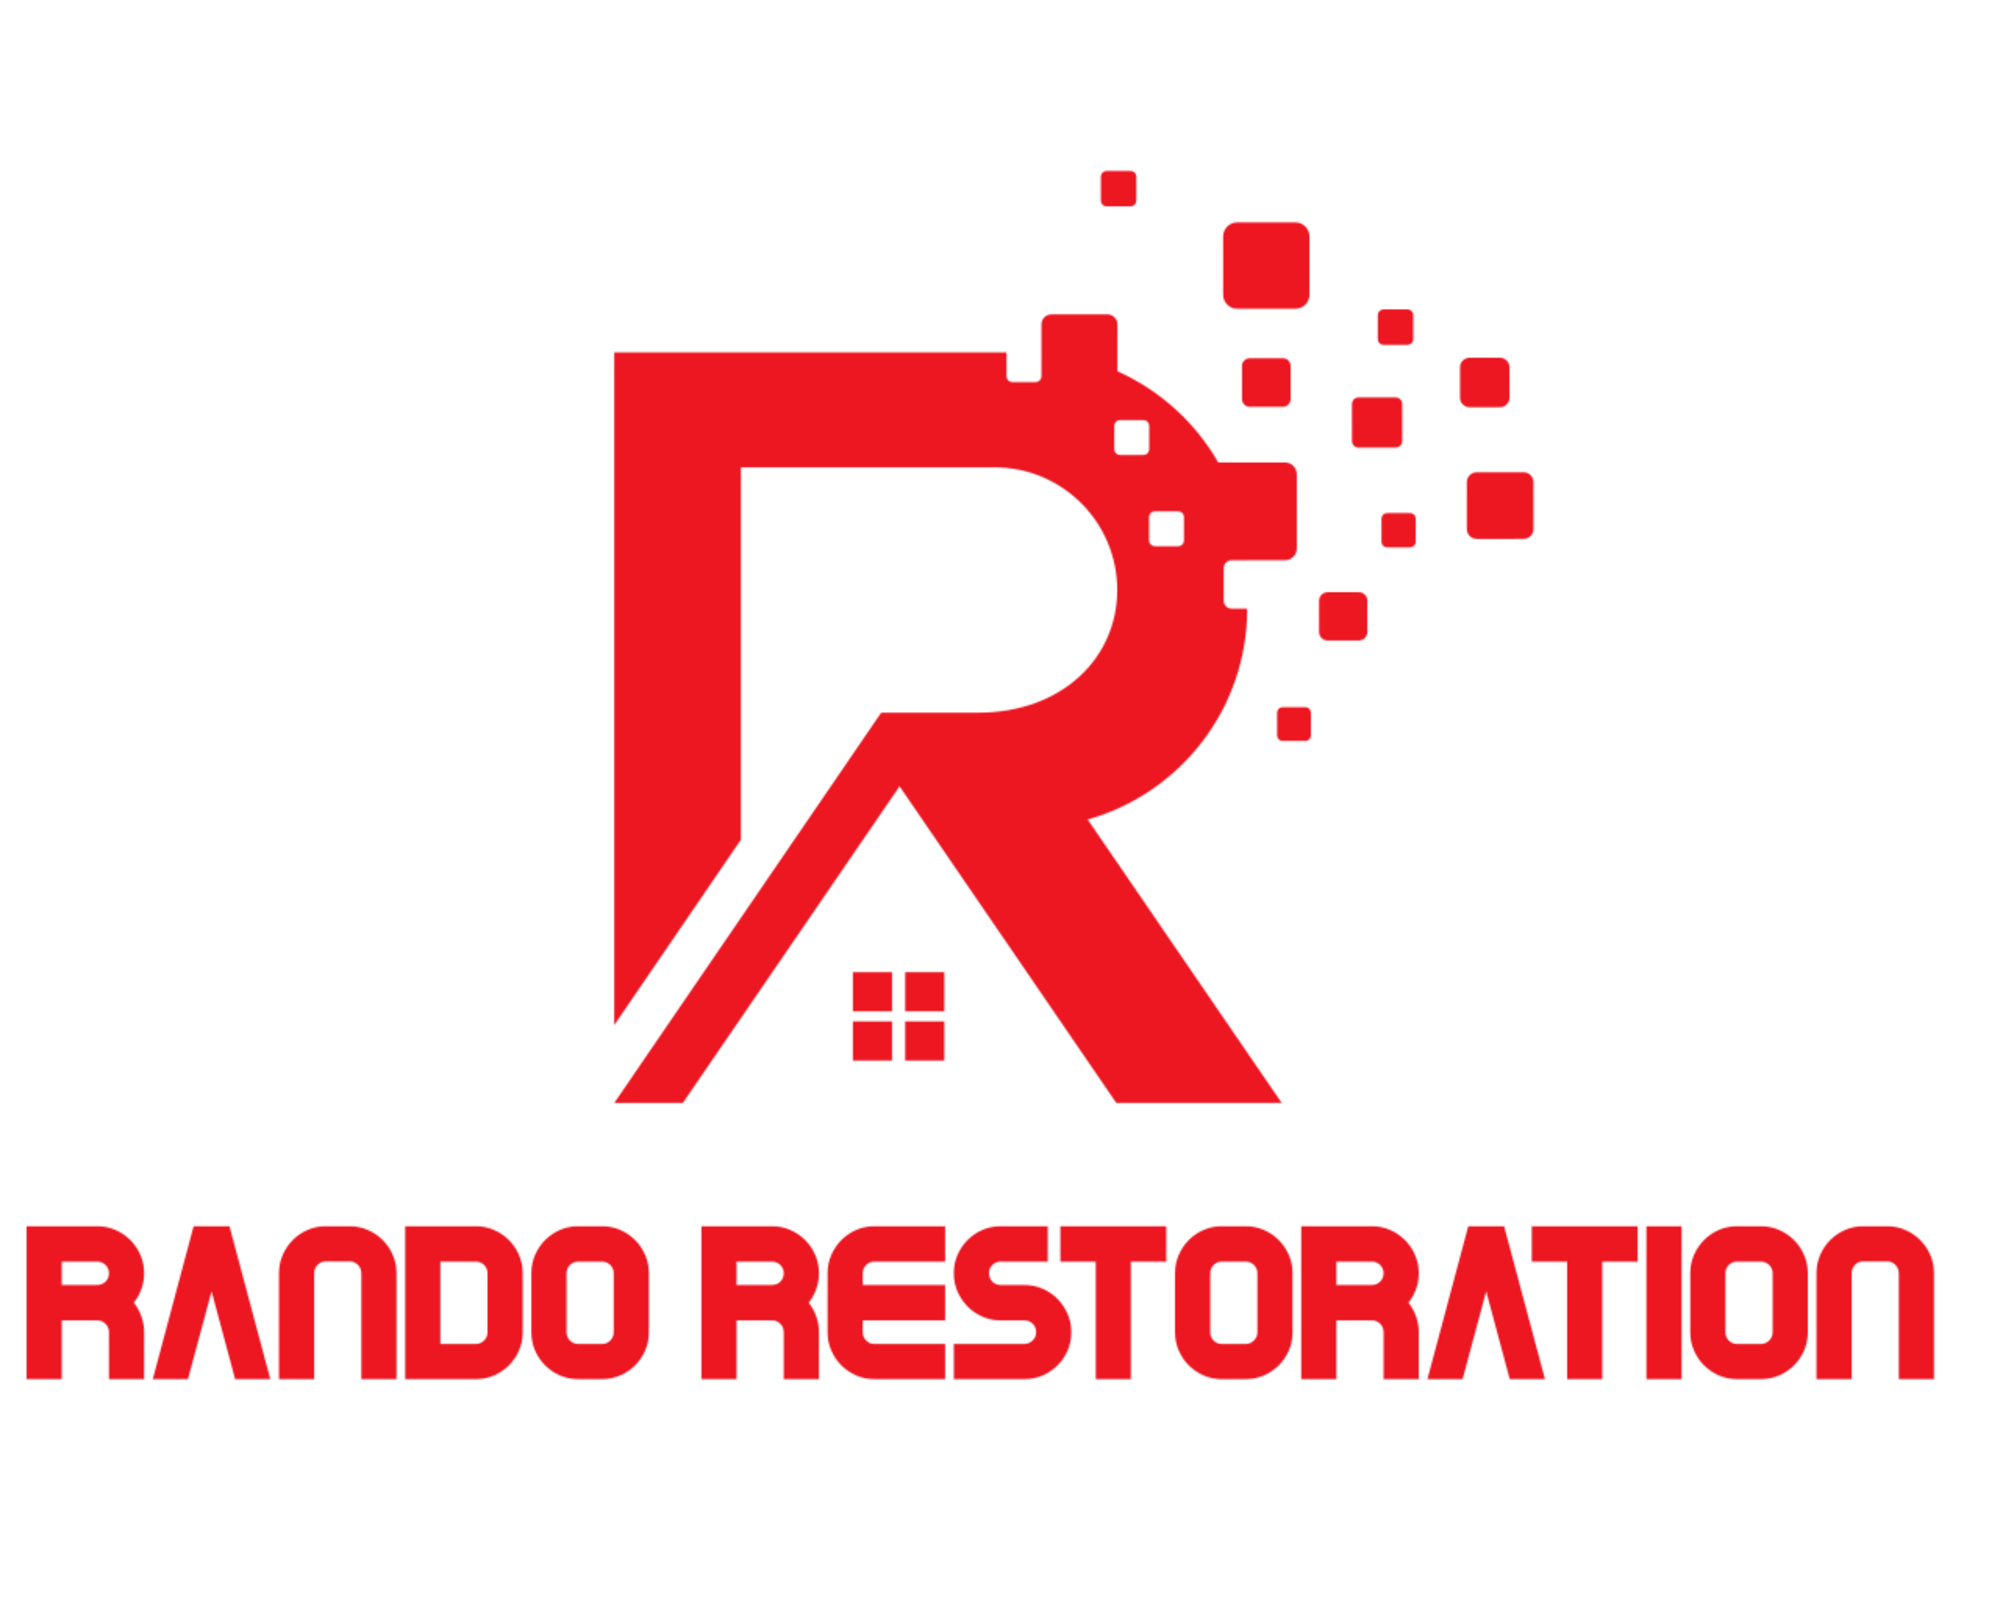 Rando Restoration Has Been Offering Cleanup and Restoration Services in Joliet, IL for Over 35 Years